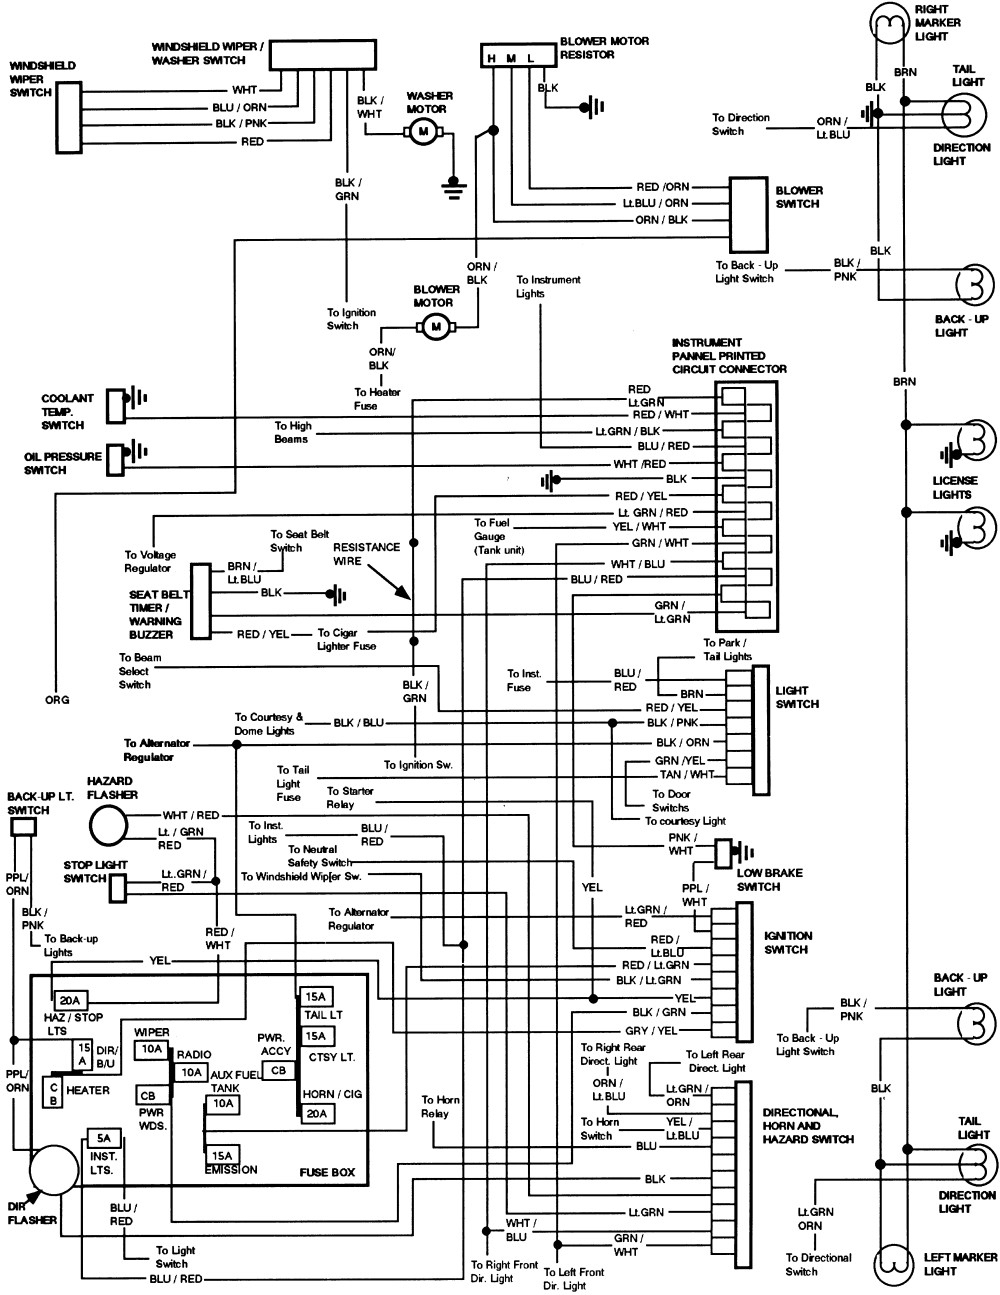 1994 Ford Wiring Diagrams - Data Wiring Diagram Detailed - Ford Wiring Diagram